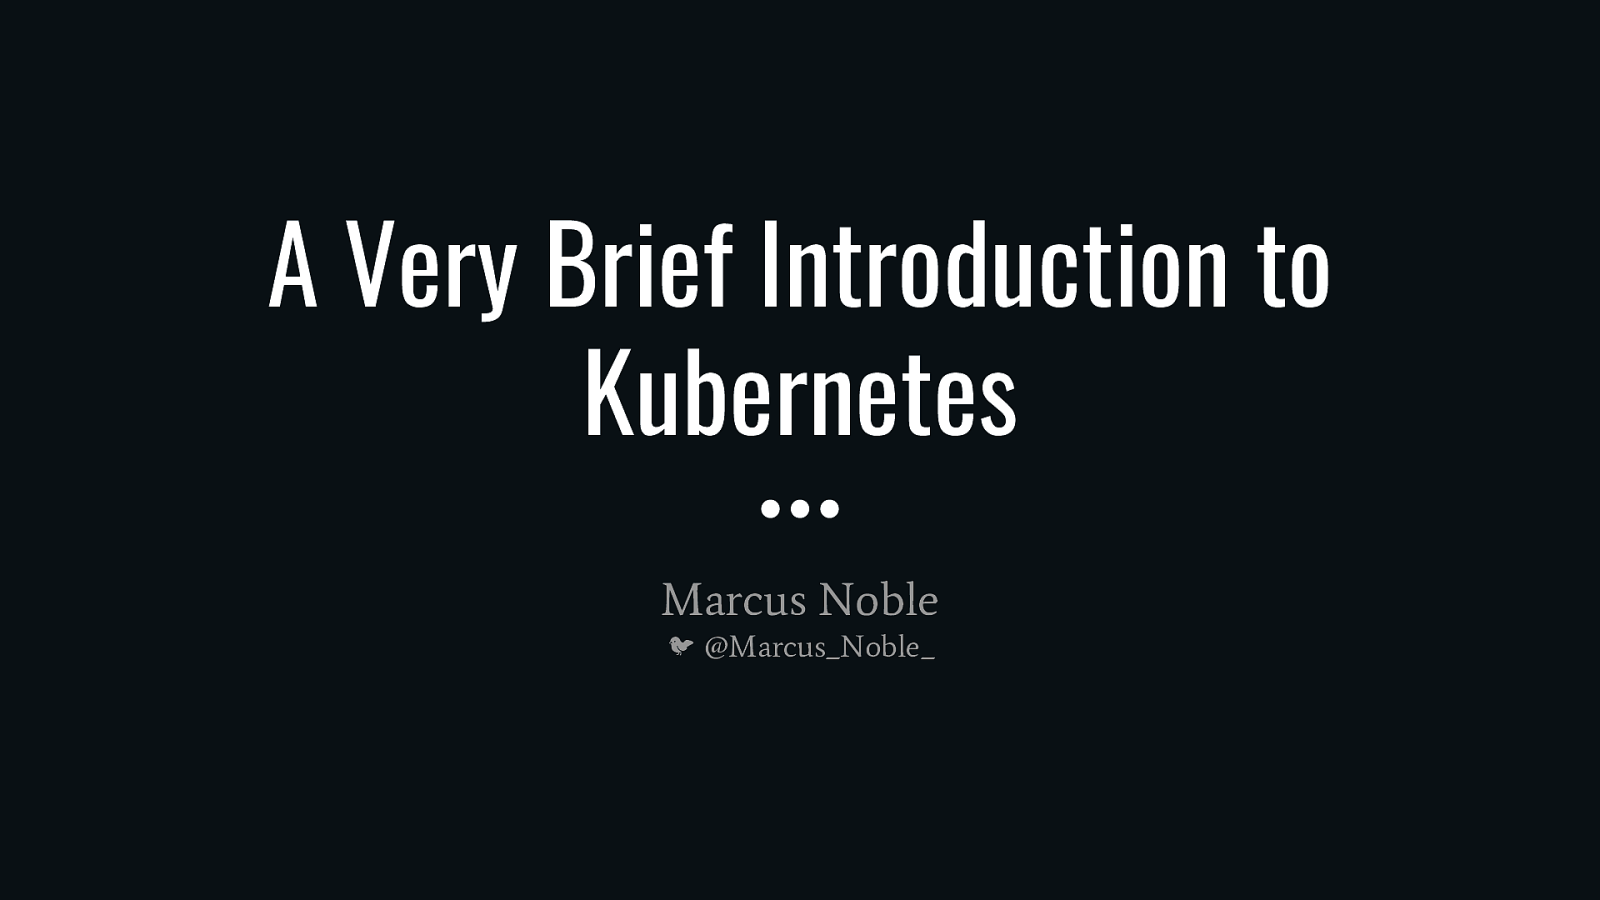 A Very Brief Introduction to Kubernetes